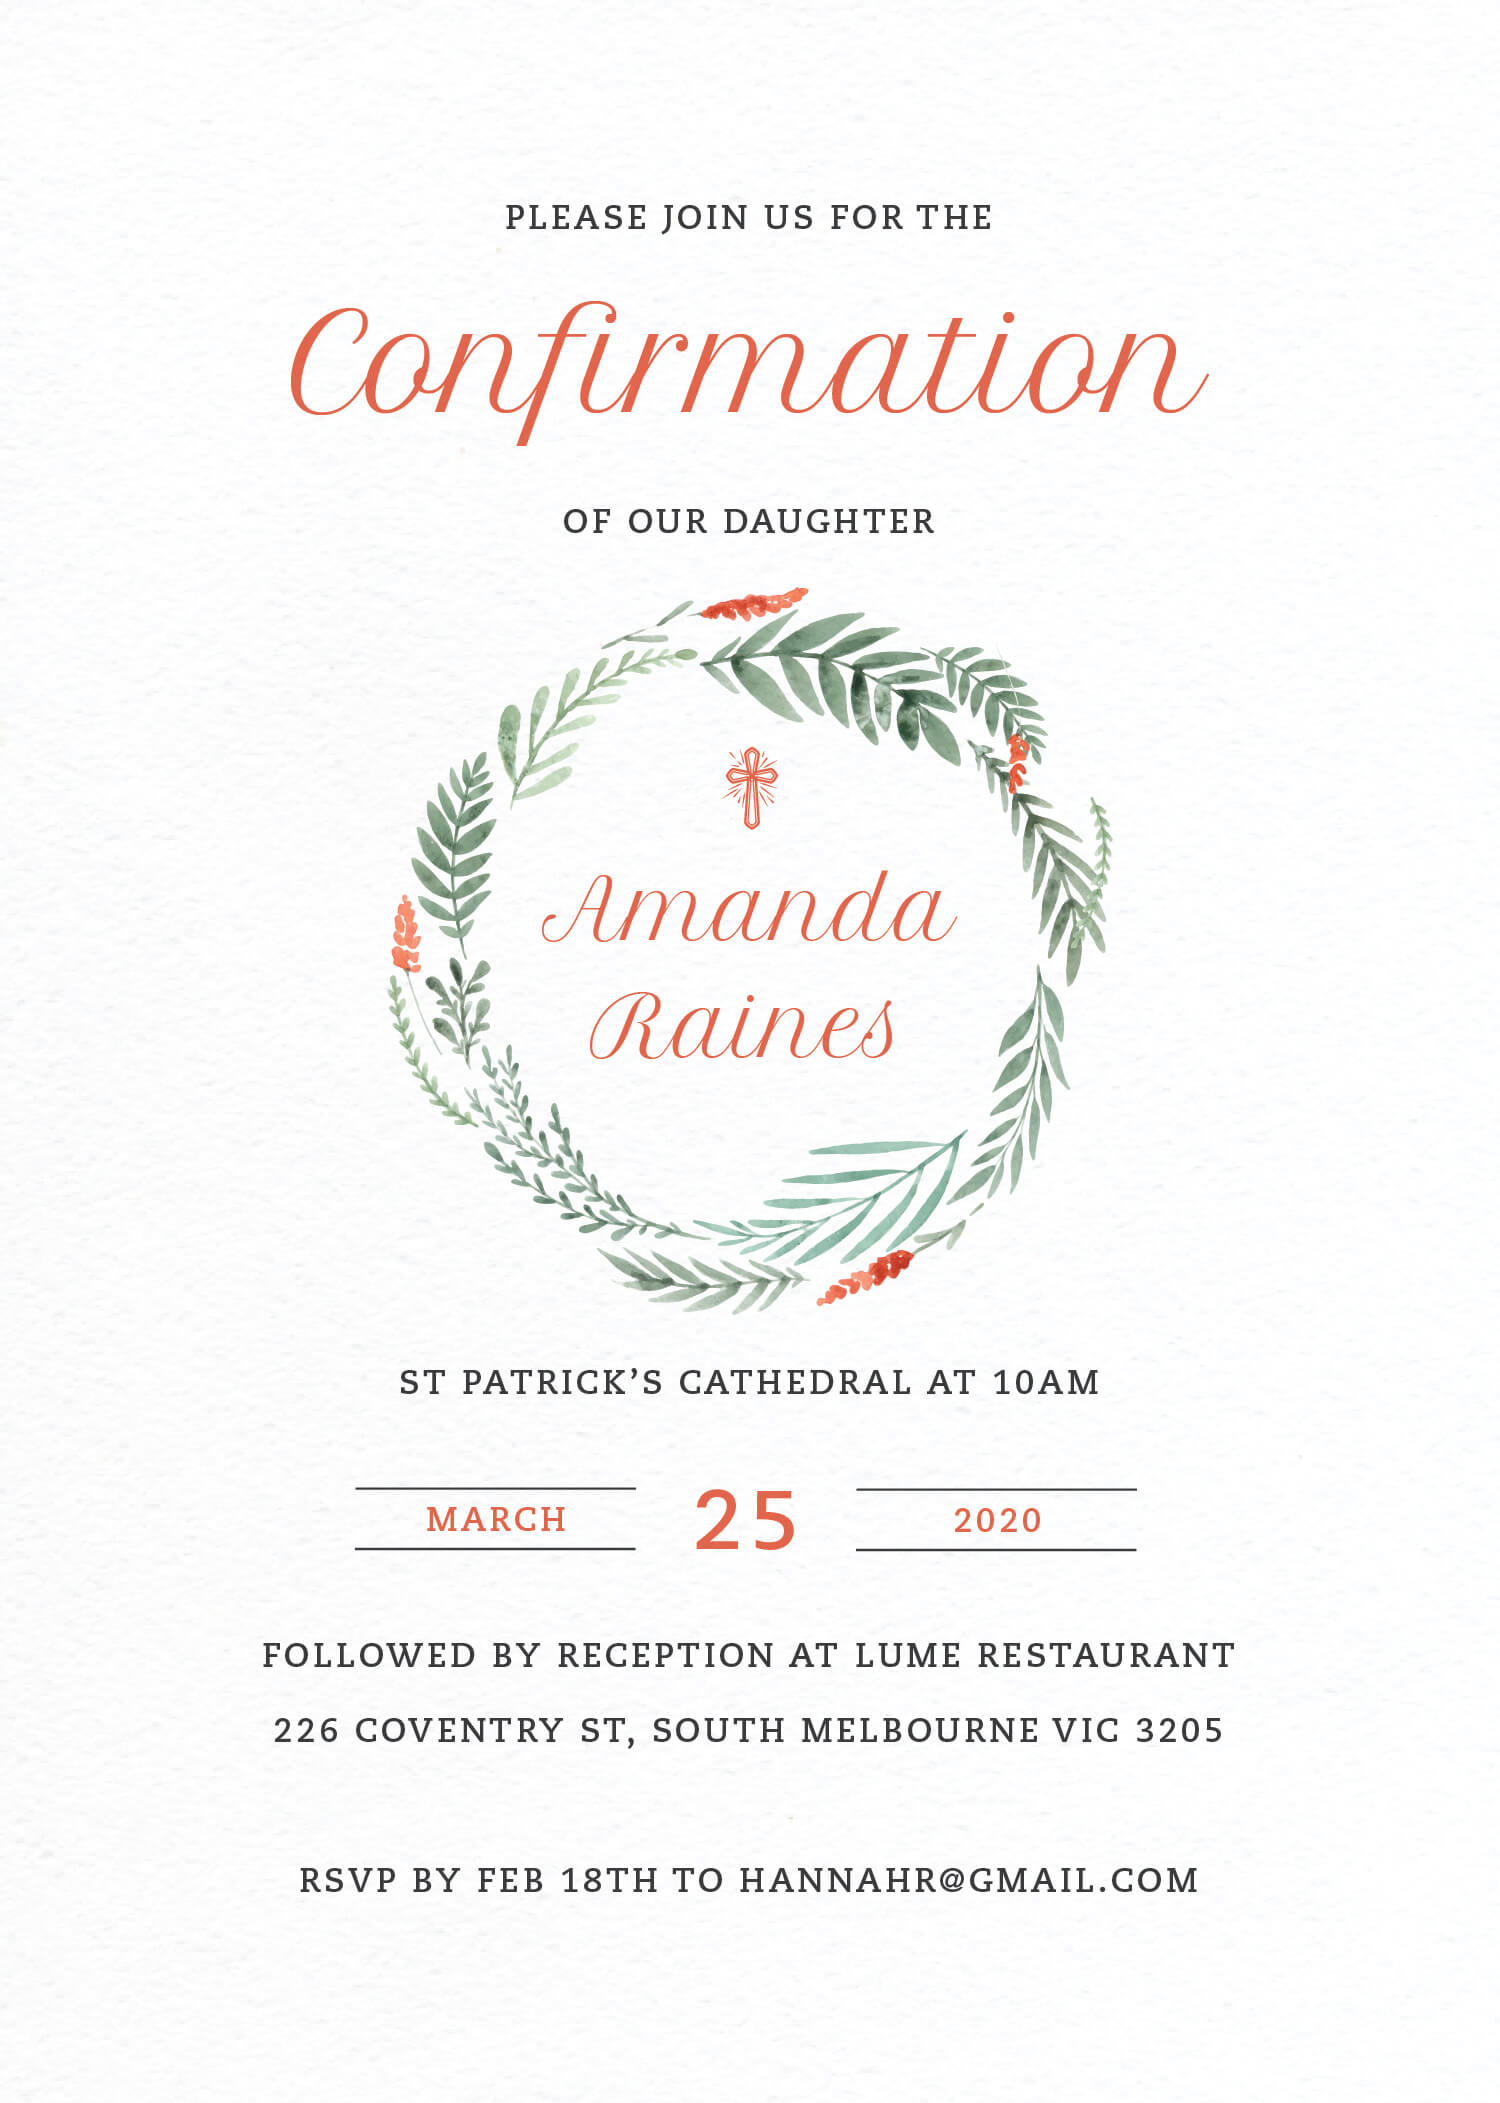 Confirming Wreath - Confirmation Invitations